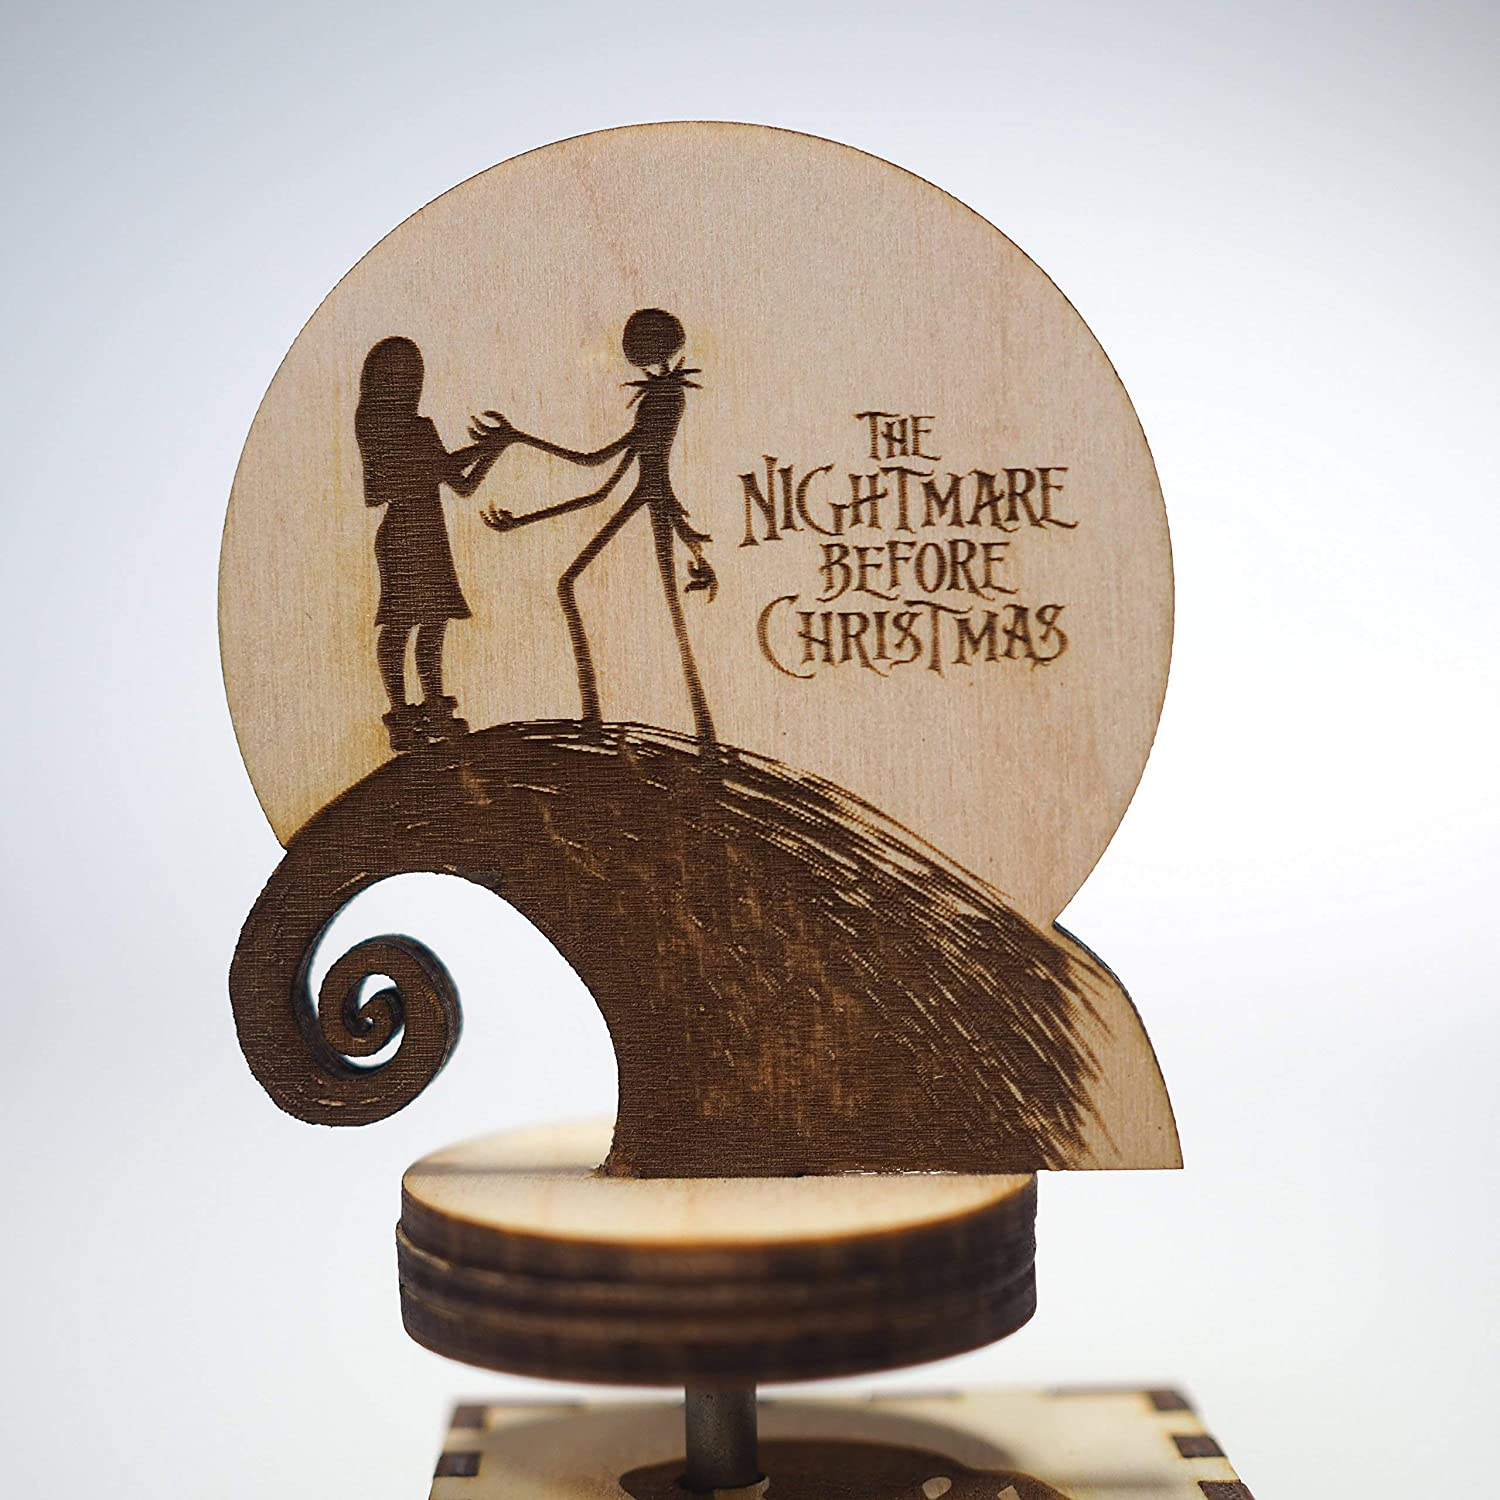 Amazon.com: The Nightmare Before Christmas Music Box - Laser cut and ...